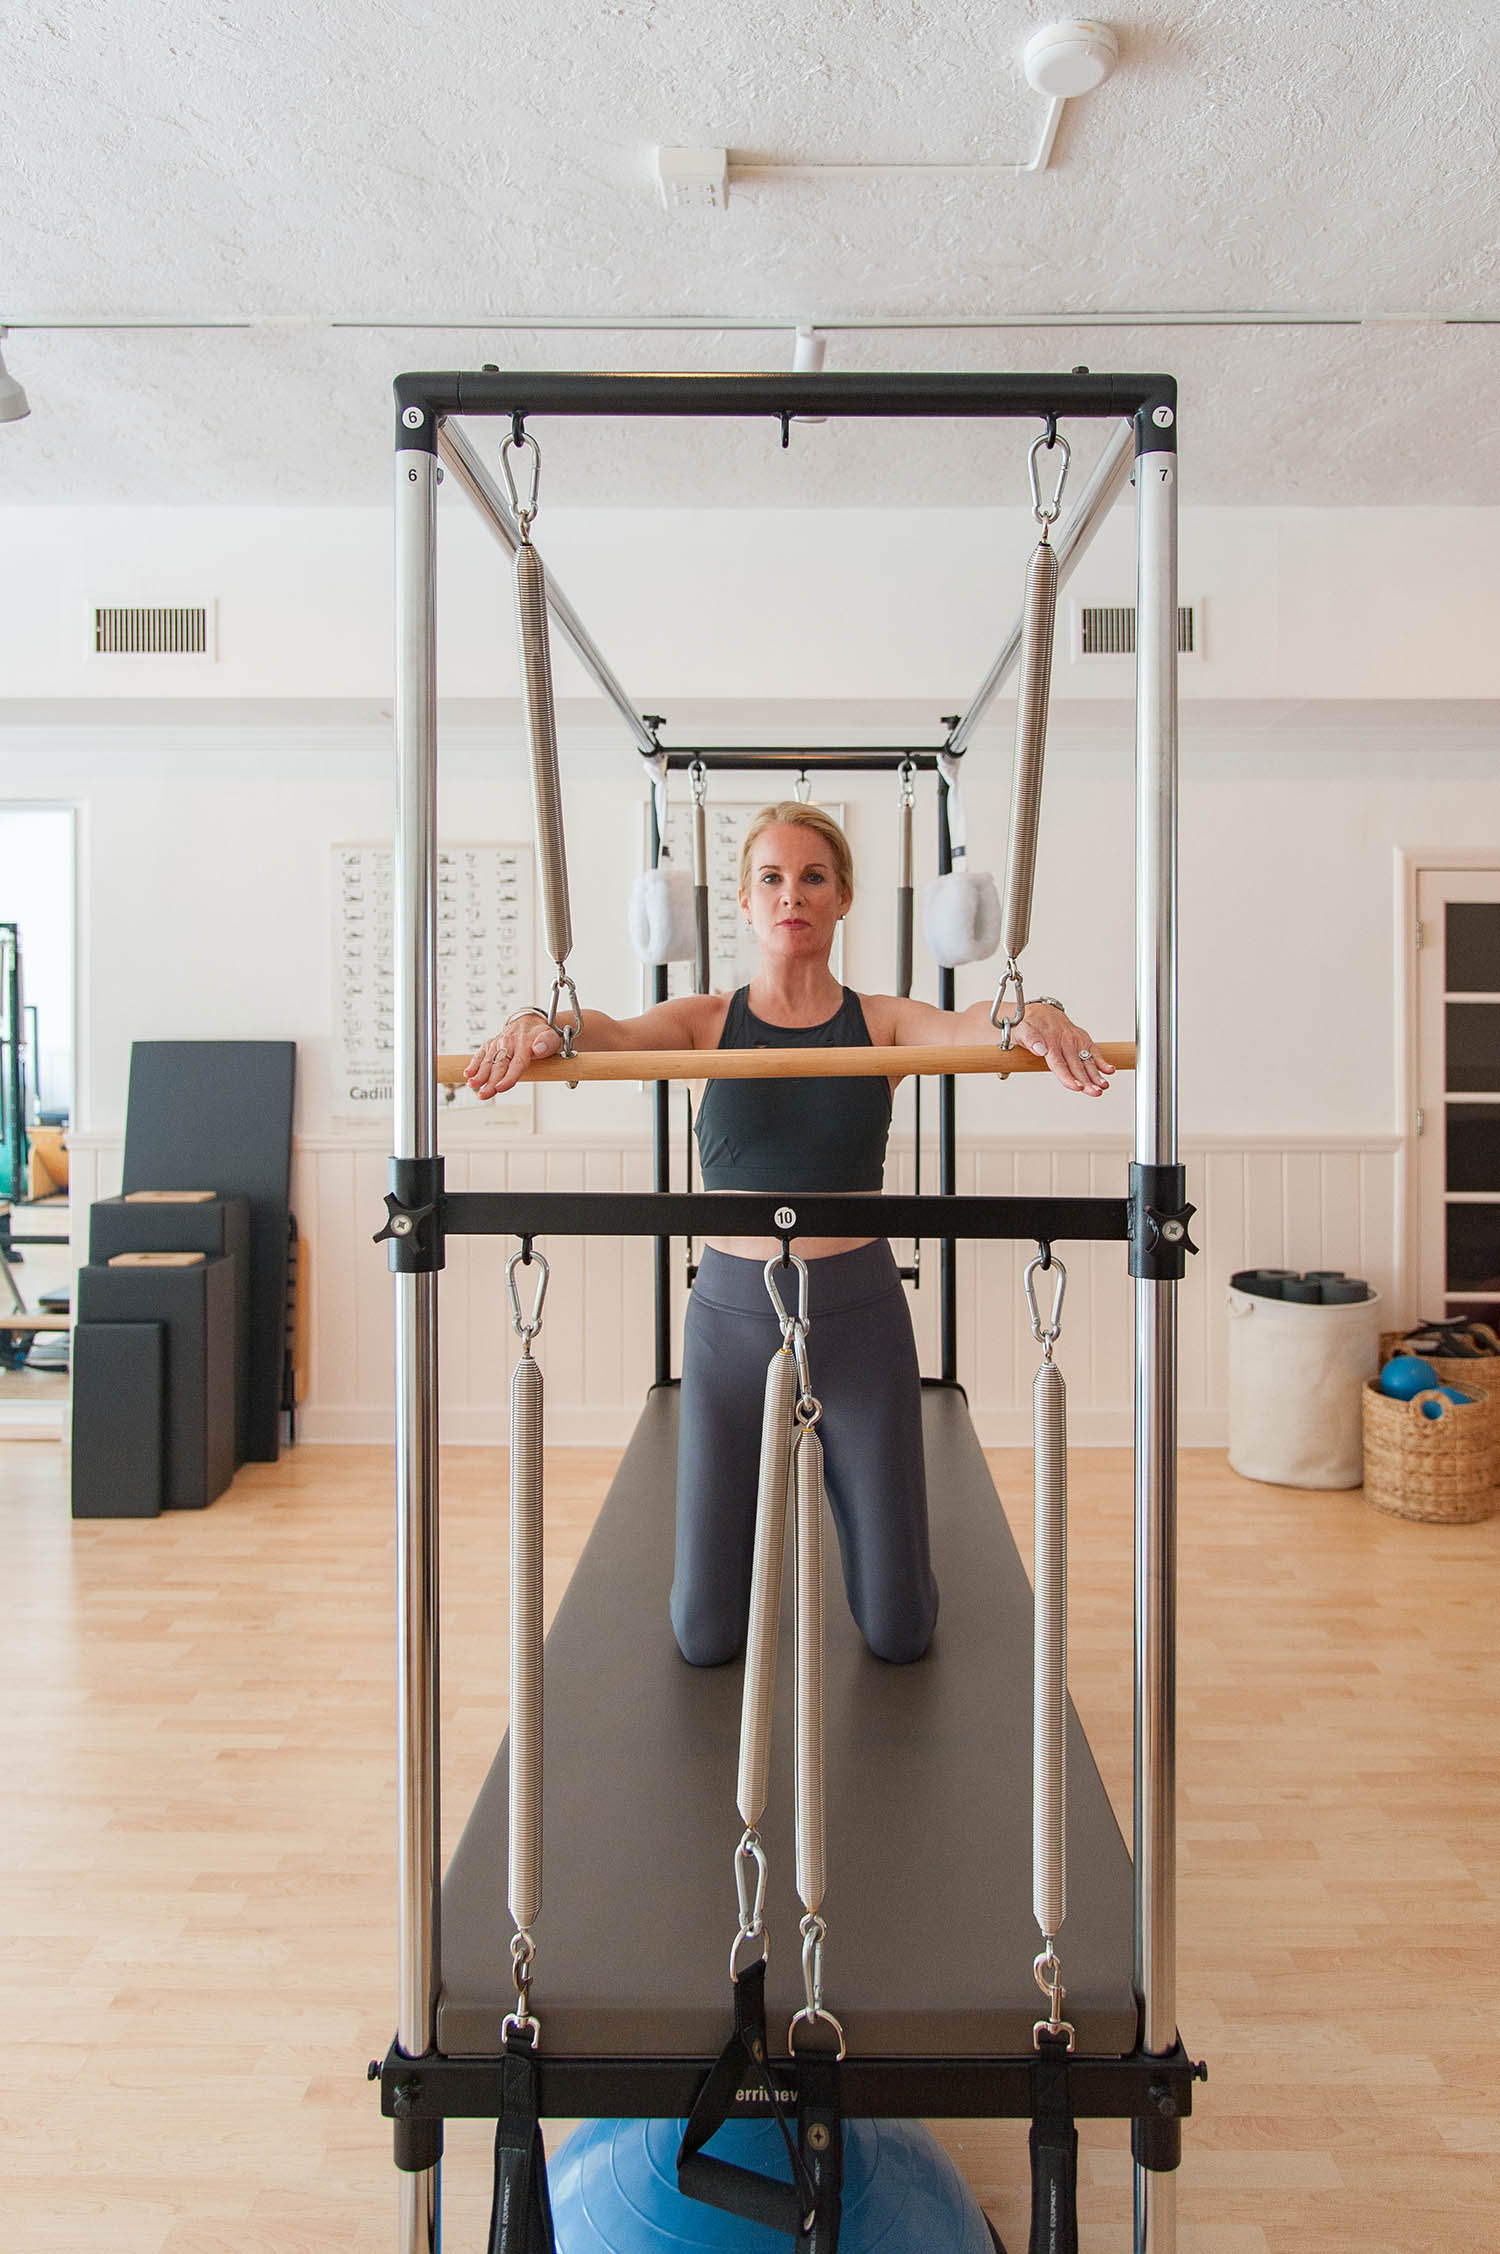 Pilates Works of Sarasota, a Pilates Studio in Sarasota, FL. Fully equipped, including the Pilates Cadillac.